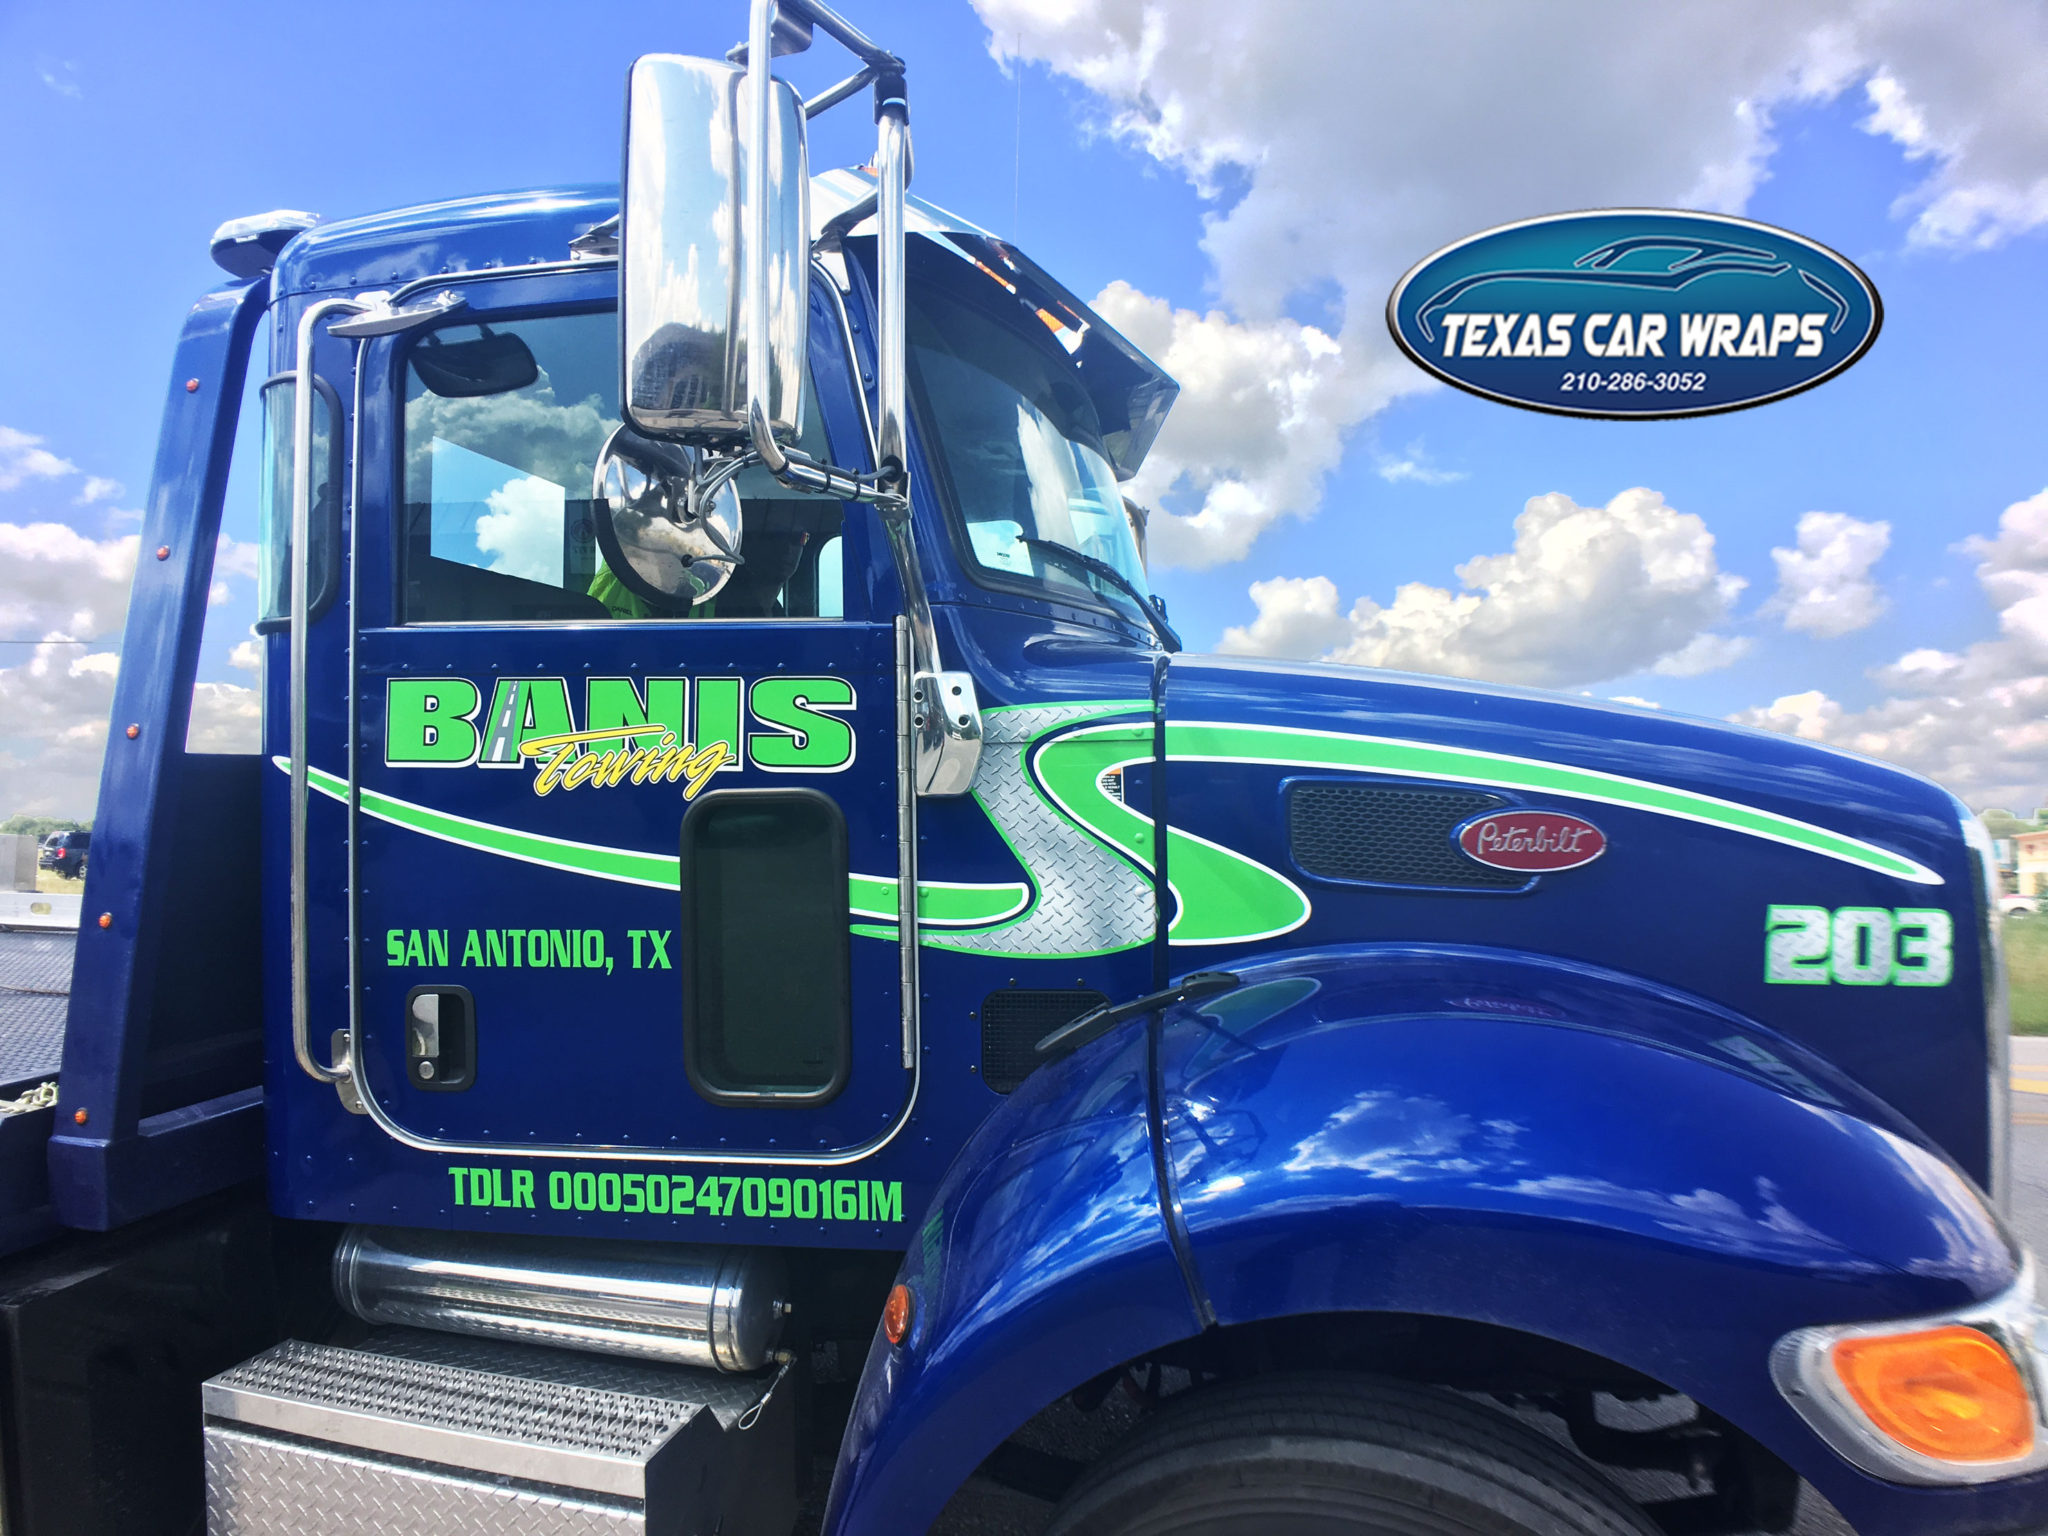 Texas Car Wraps - Laredo | Vehicle Wrap Laredo TX | Graphics Laredo TX | Vehicle Graphics Laredo TX | Commercial Advertising Laredo TX | Truck Graphics Laredo TX | Trailer Graphics Laredo TX | Trailer Wrap Laredo TX | Car Wraps Laredo TX |